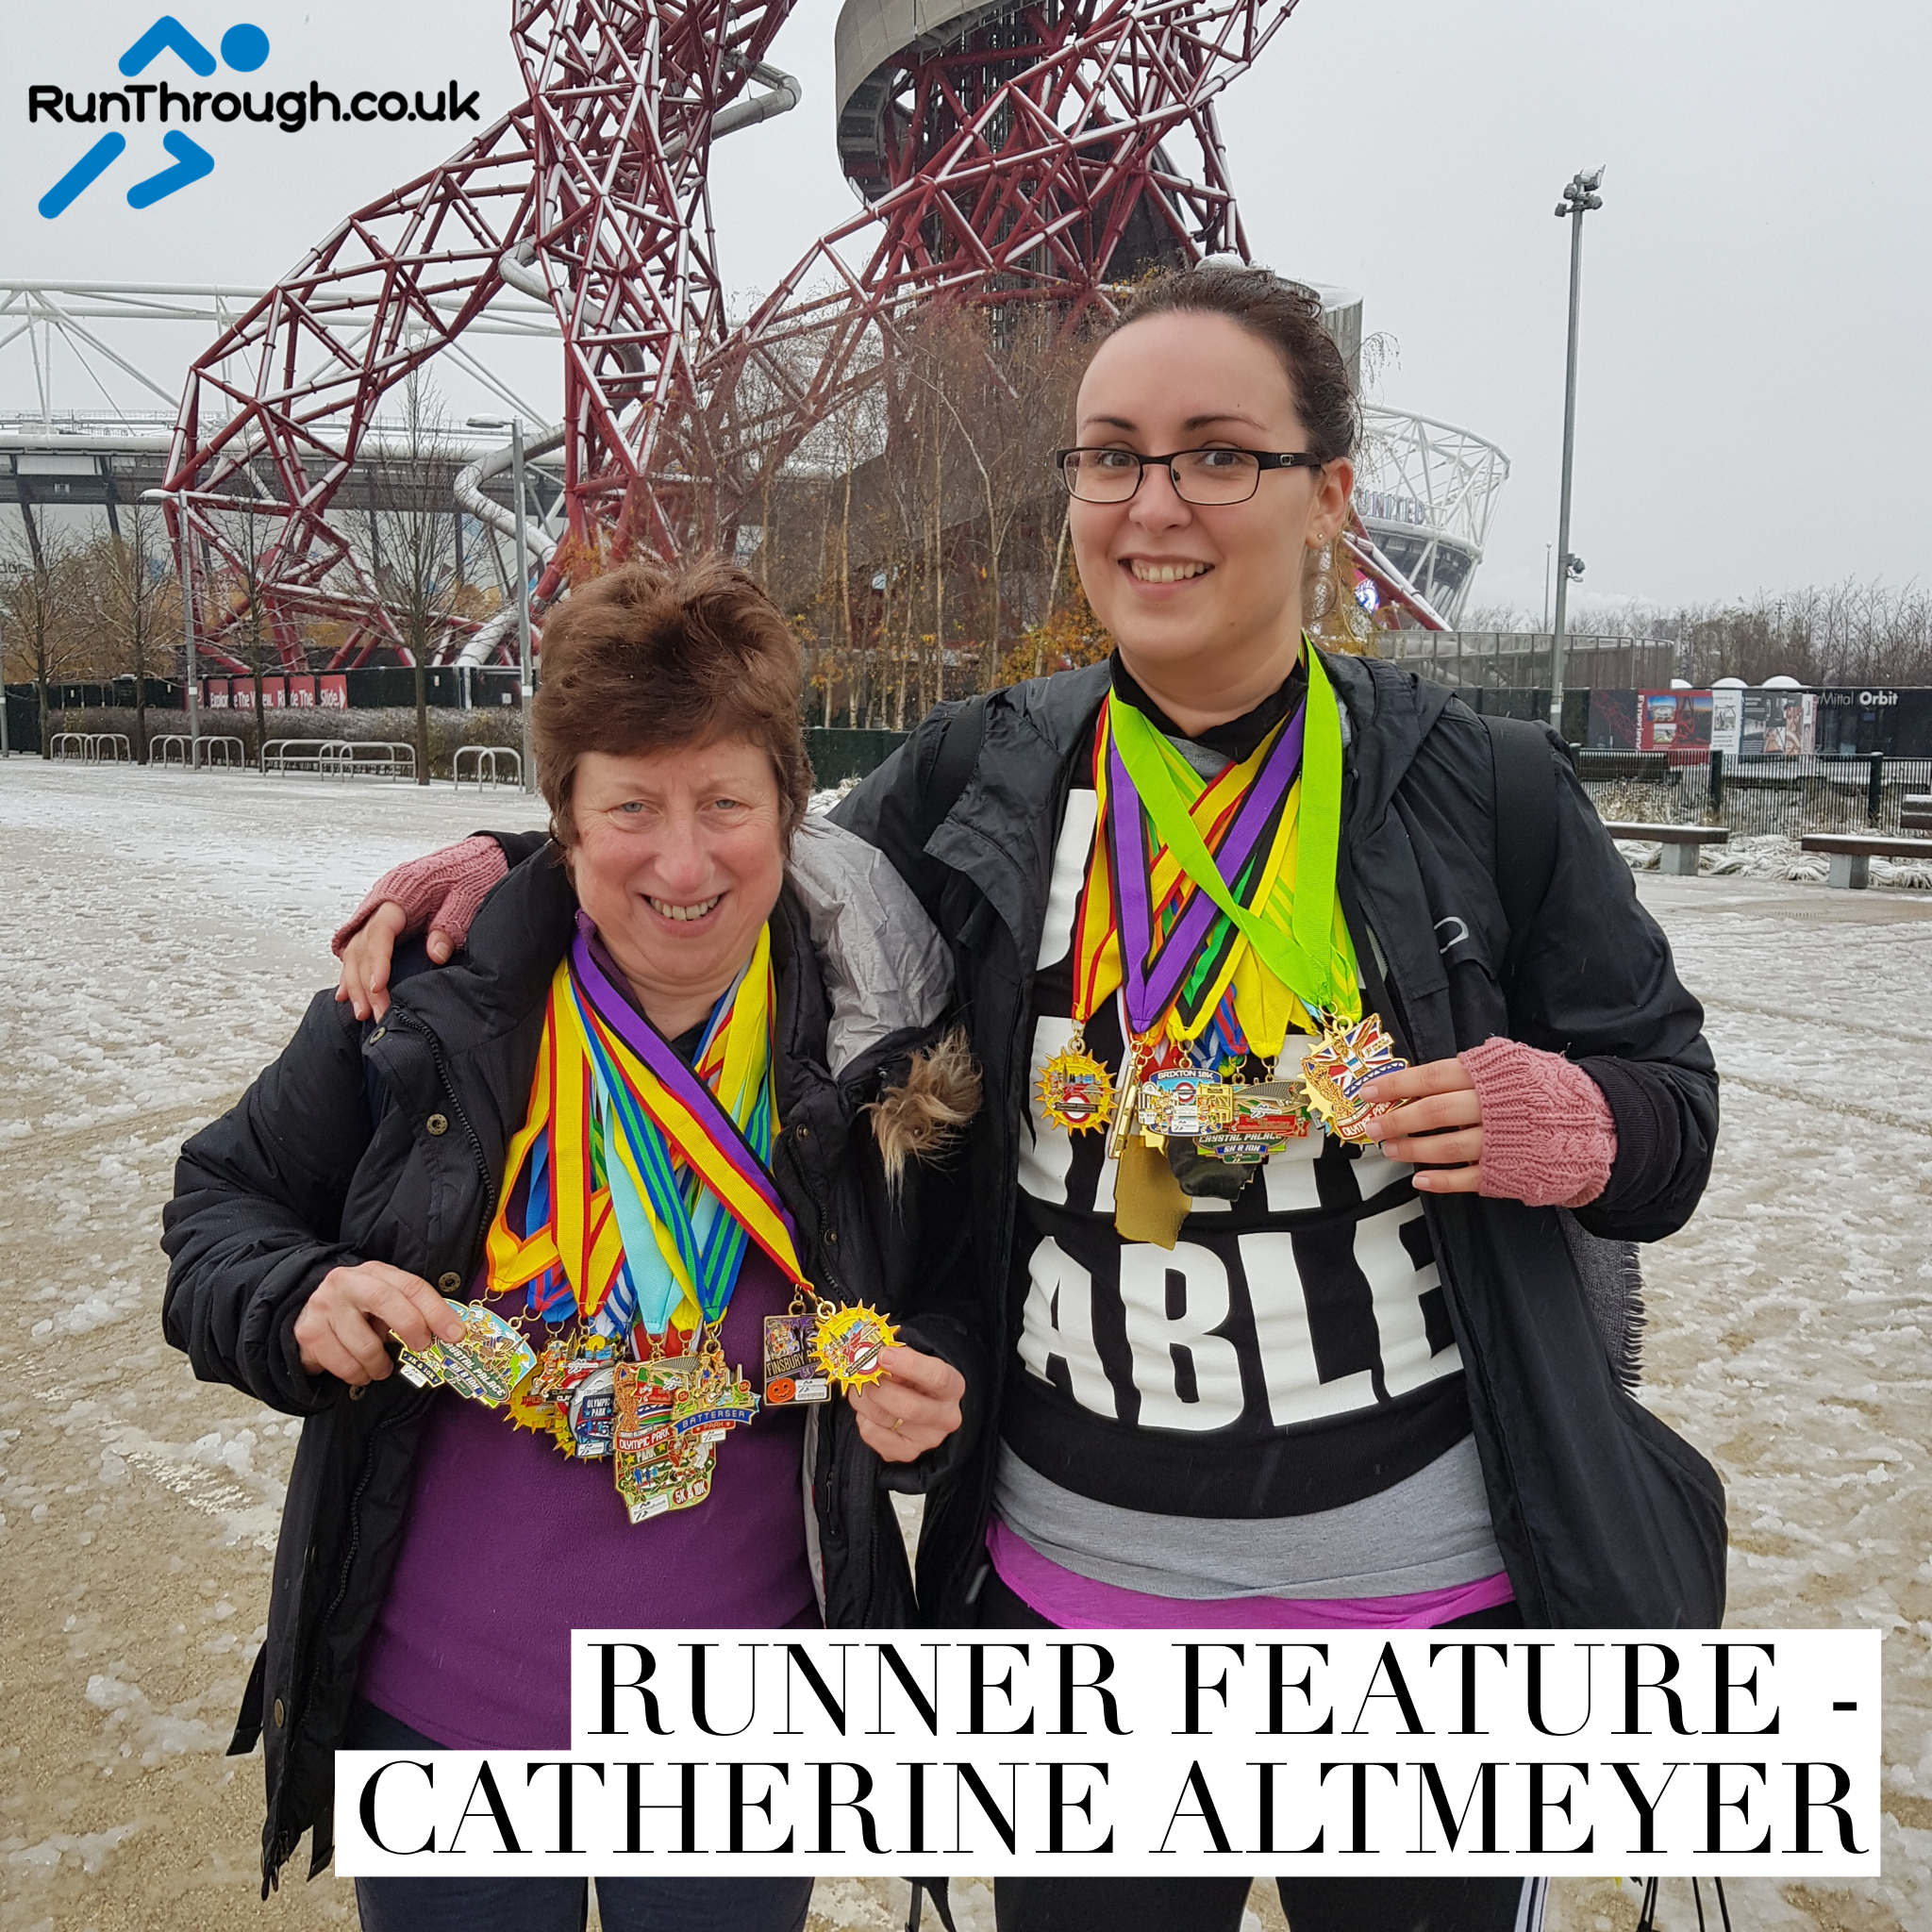 Runner Feature – Catherine Altmeyer